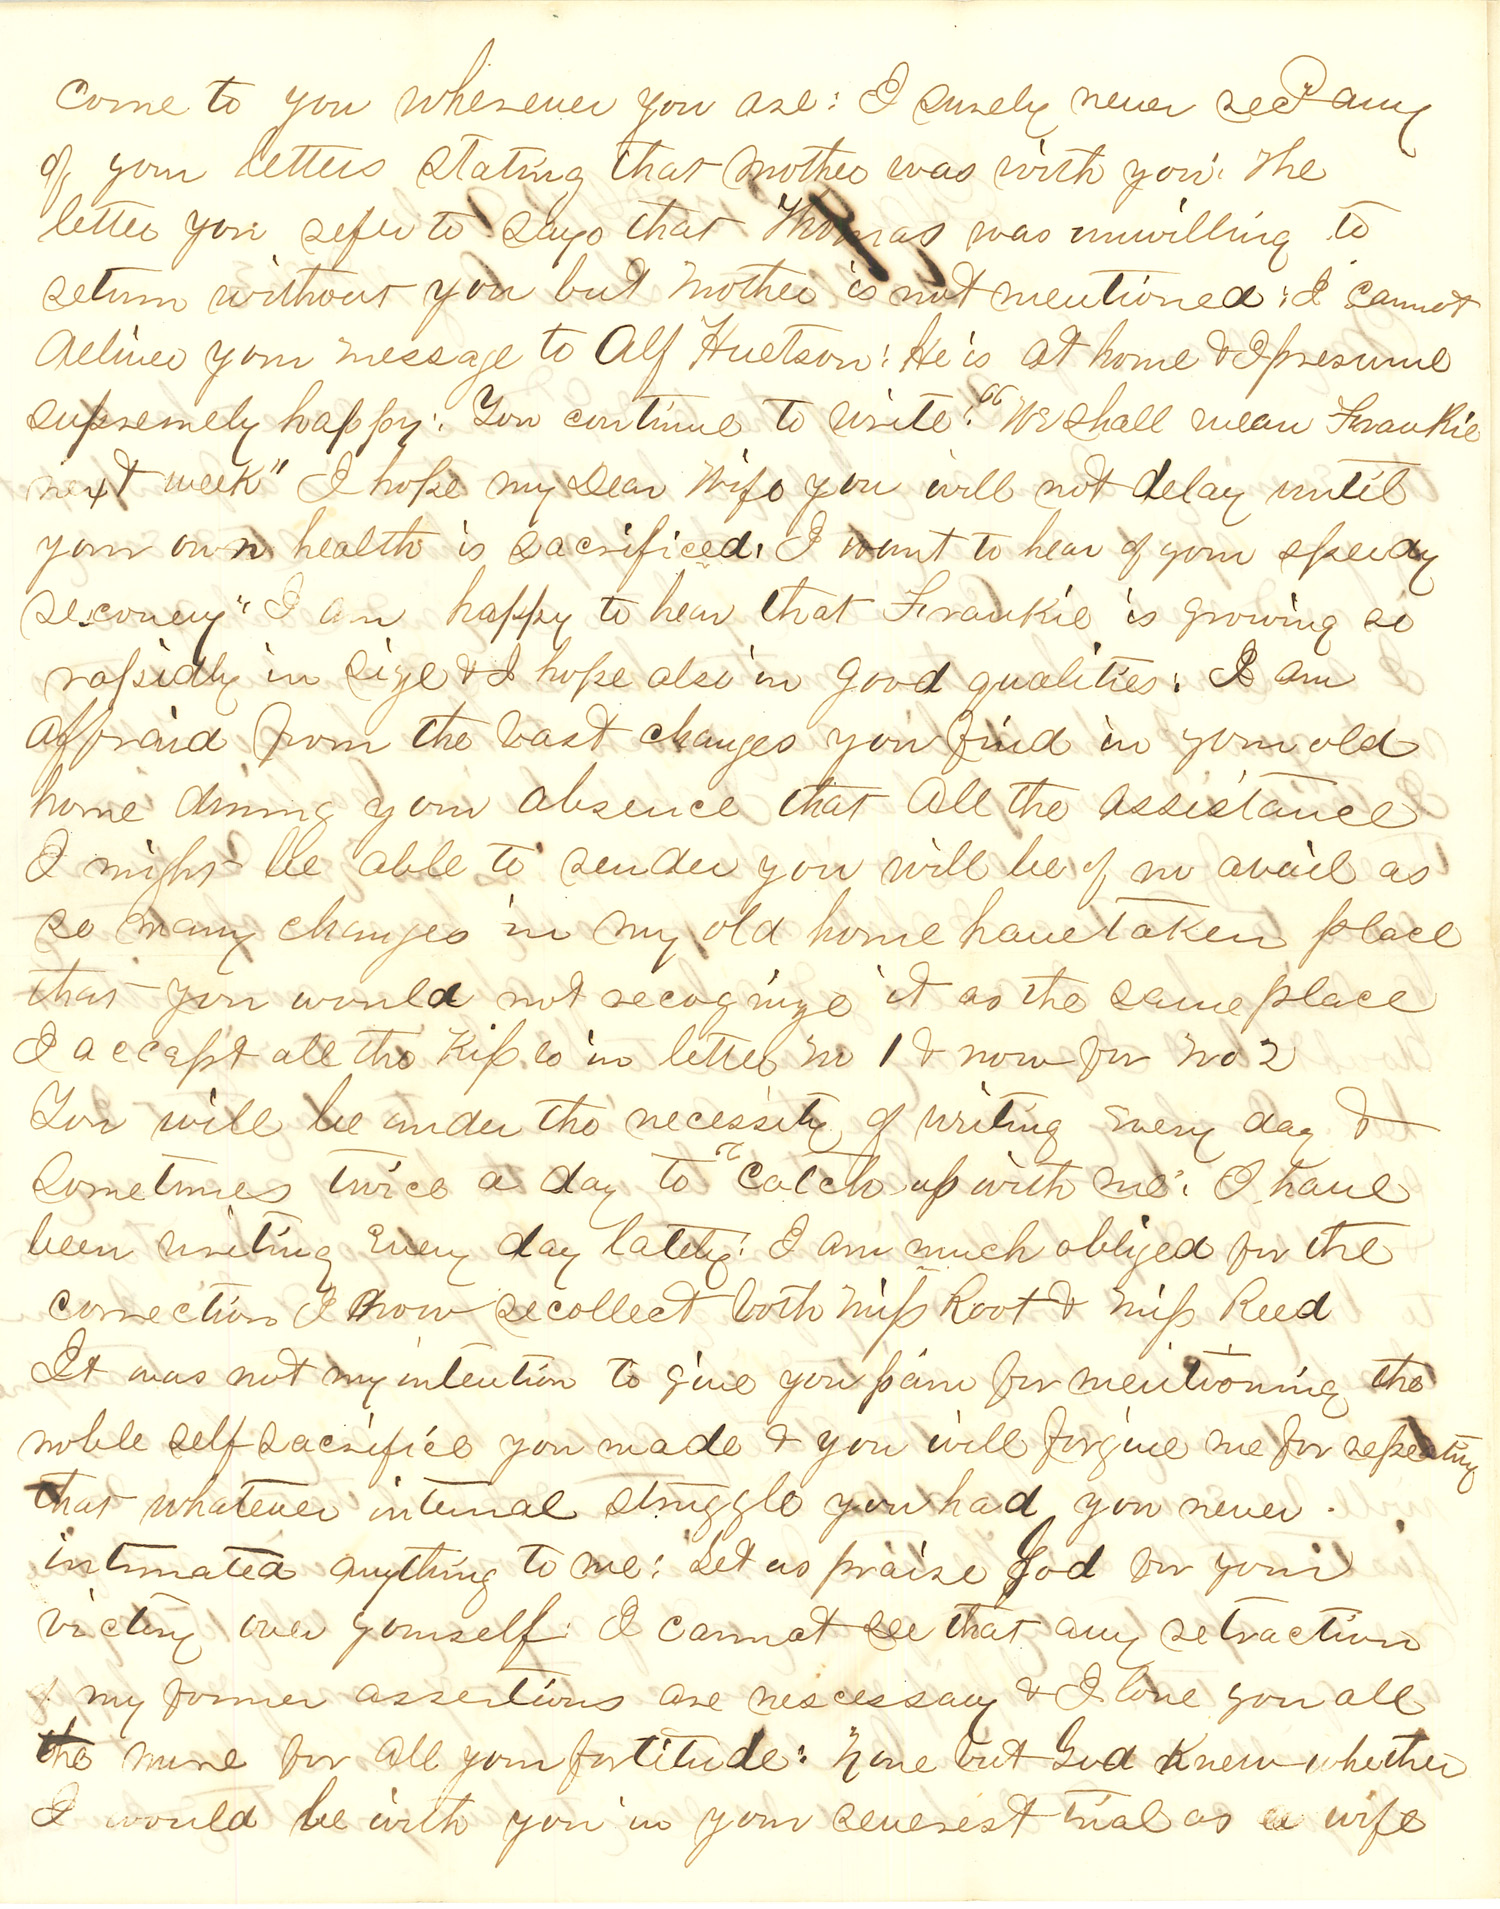 Joseph Culver Letter, August 14, 1863, Letter 2, Page 2